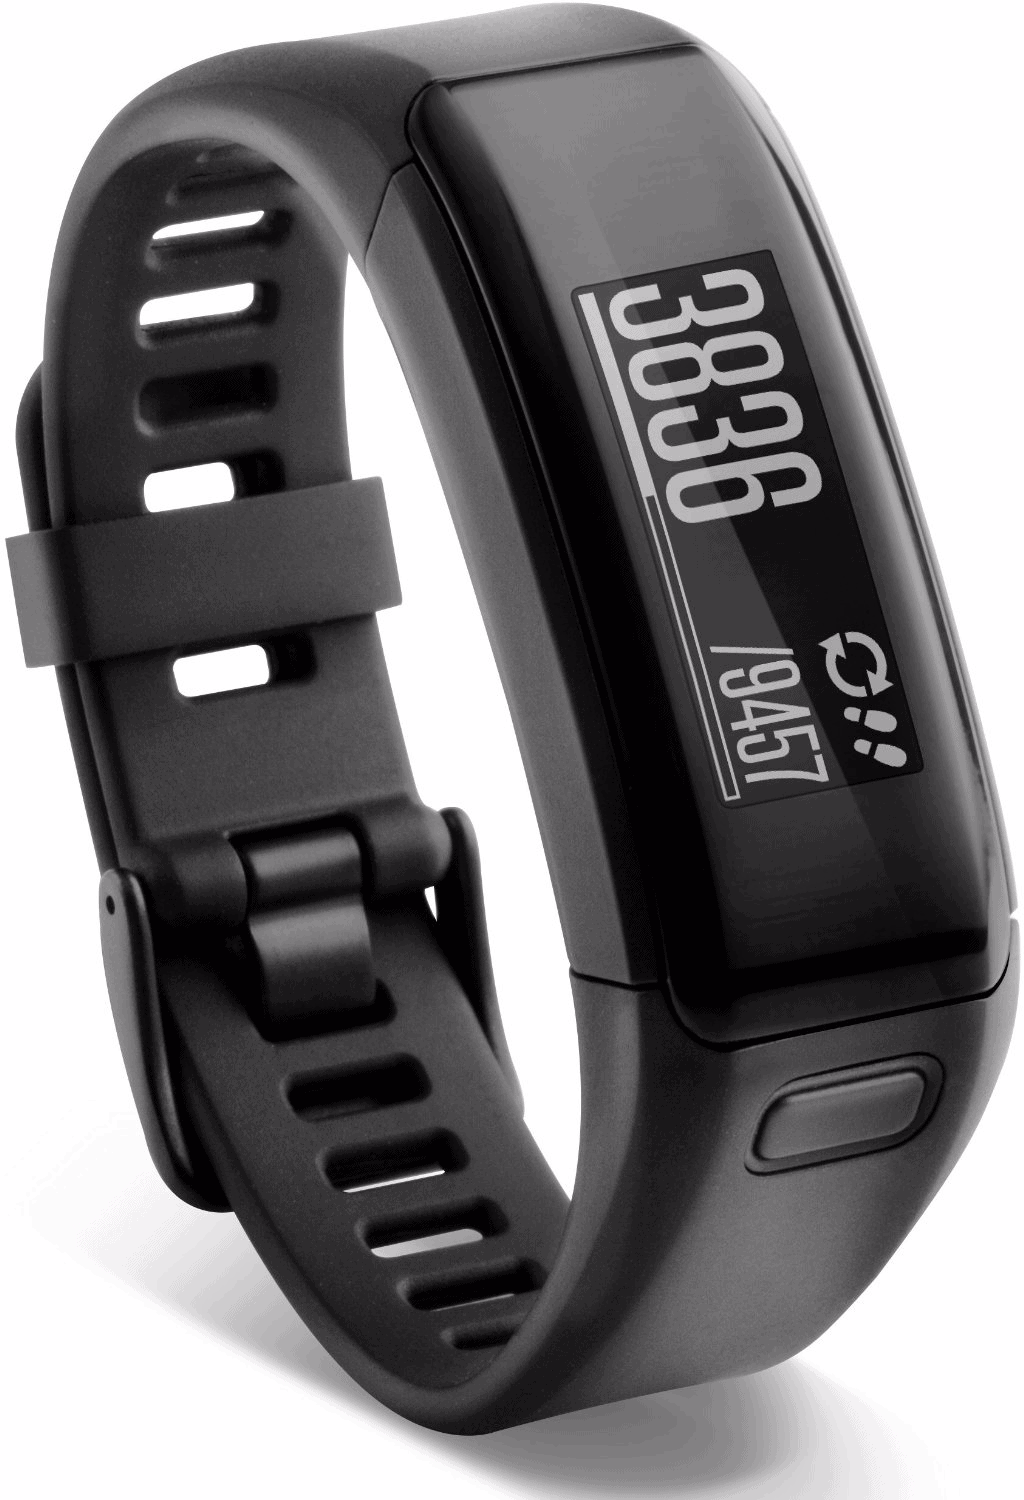 Garmin Vivosmart HR Deal 01